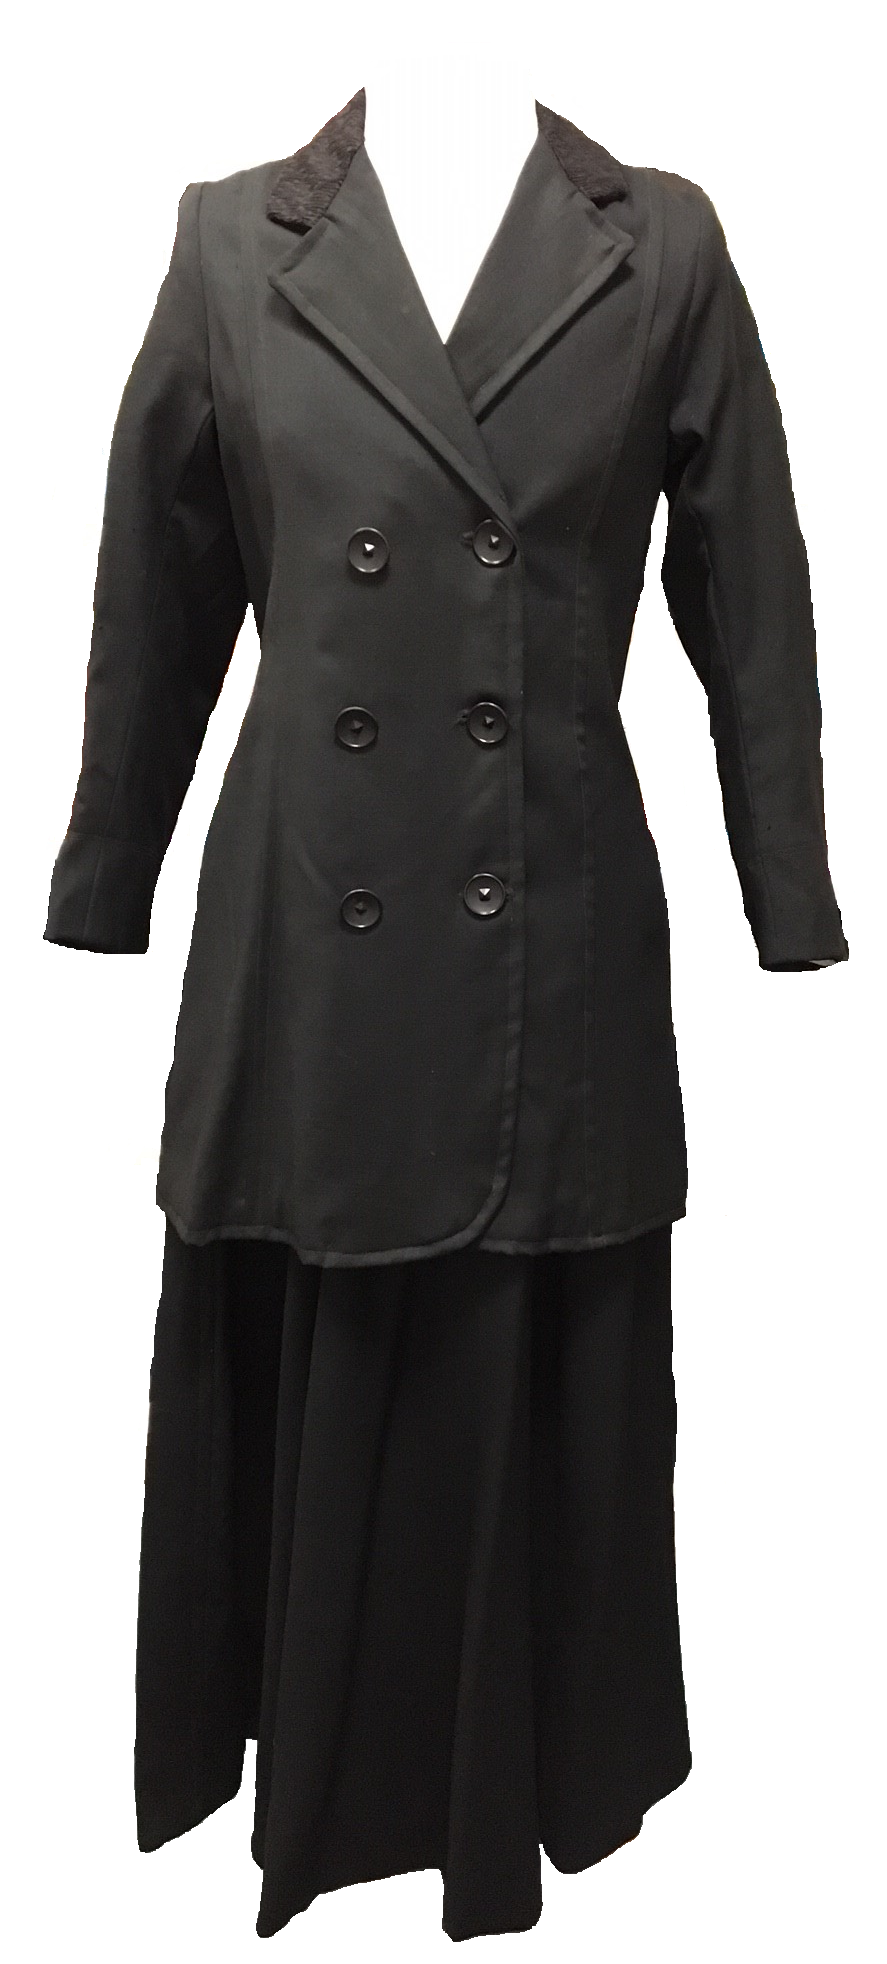 This navy blue 'costume' dating from 1910 consists of a black worsted jacket with crepe collar and a skirt of heavy twill weave.